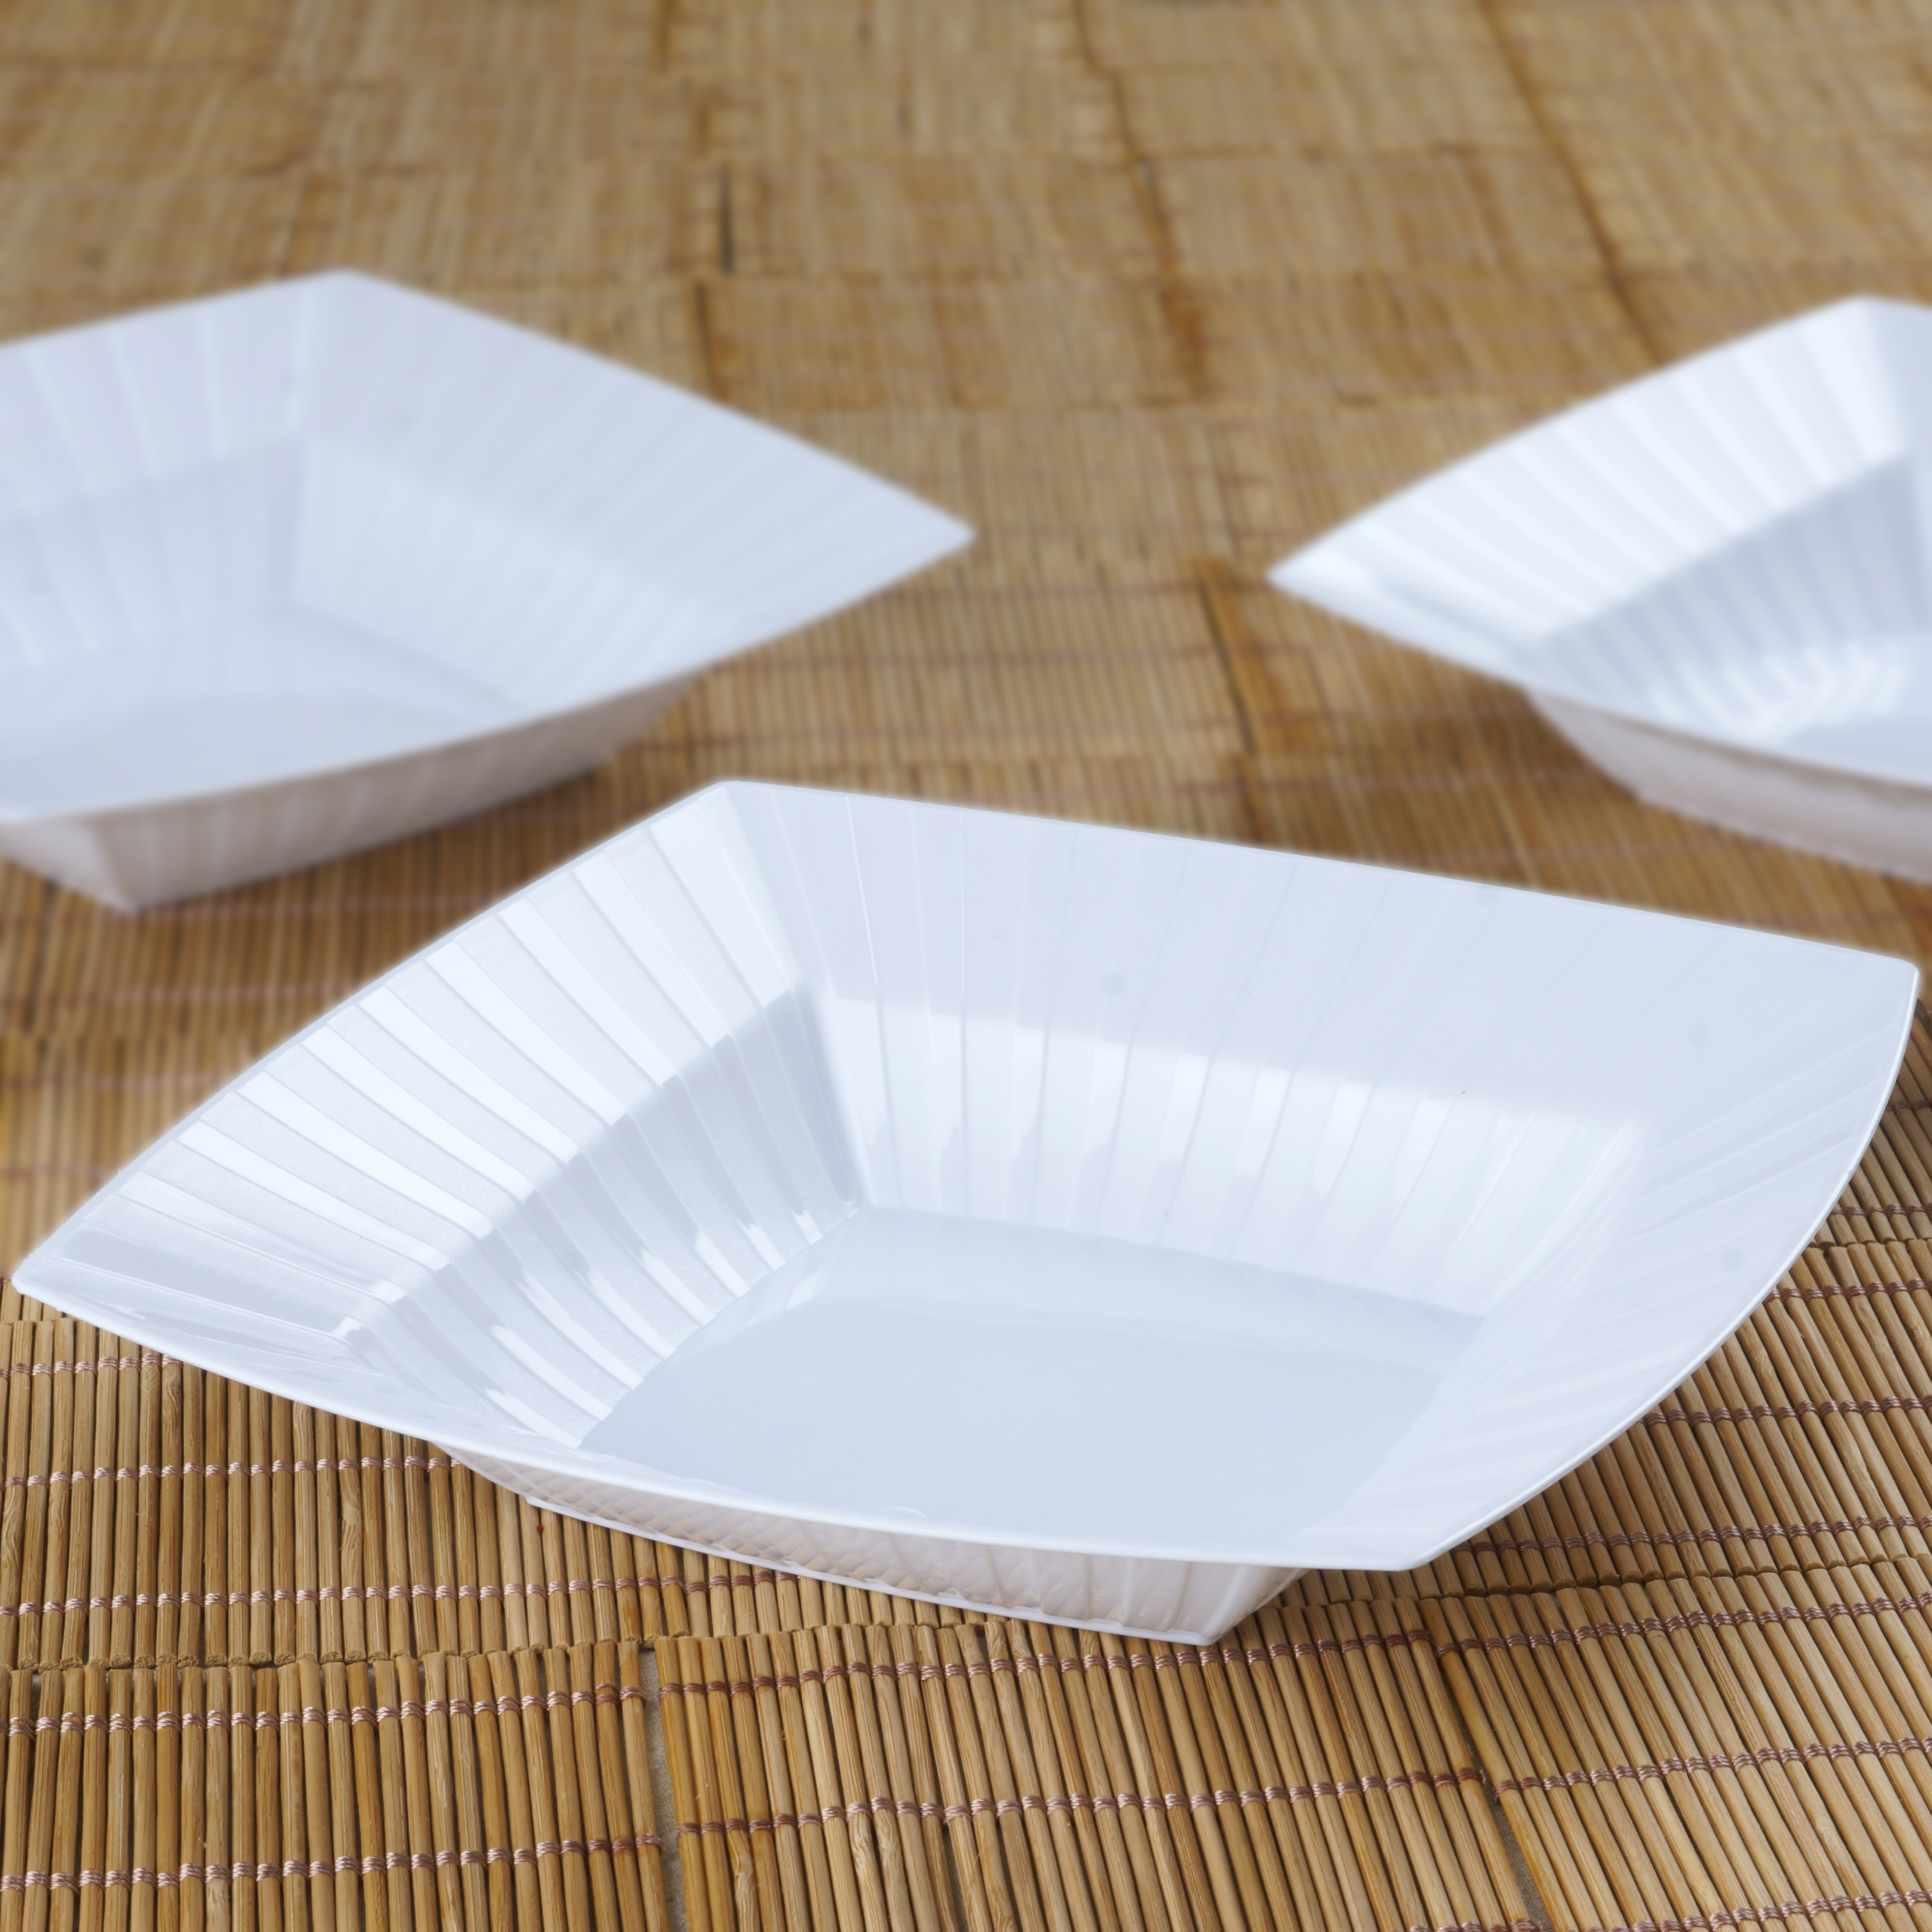 BalsaCircle 10 pcs 32 oz Disposable Square Striped Plastic Bowls for Wedding Reception Party Buffet Catering Tableware